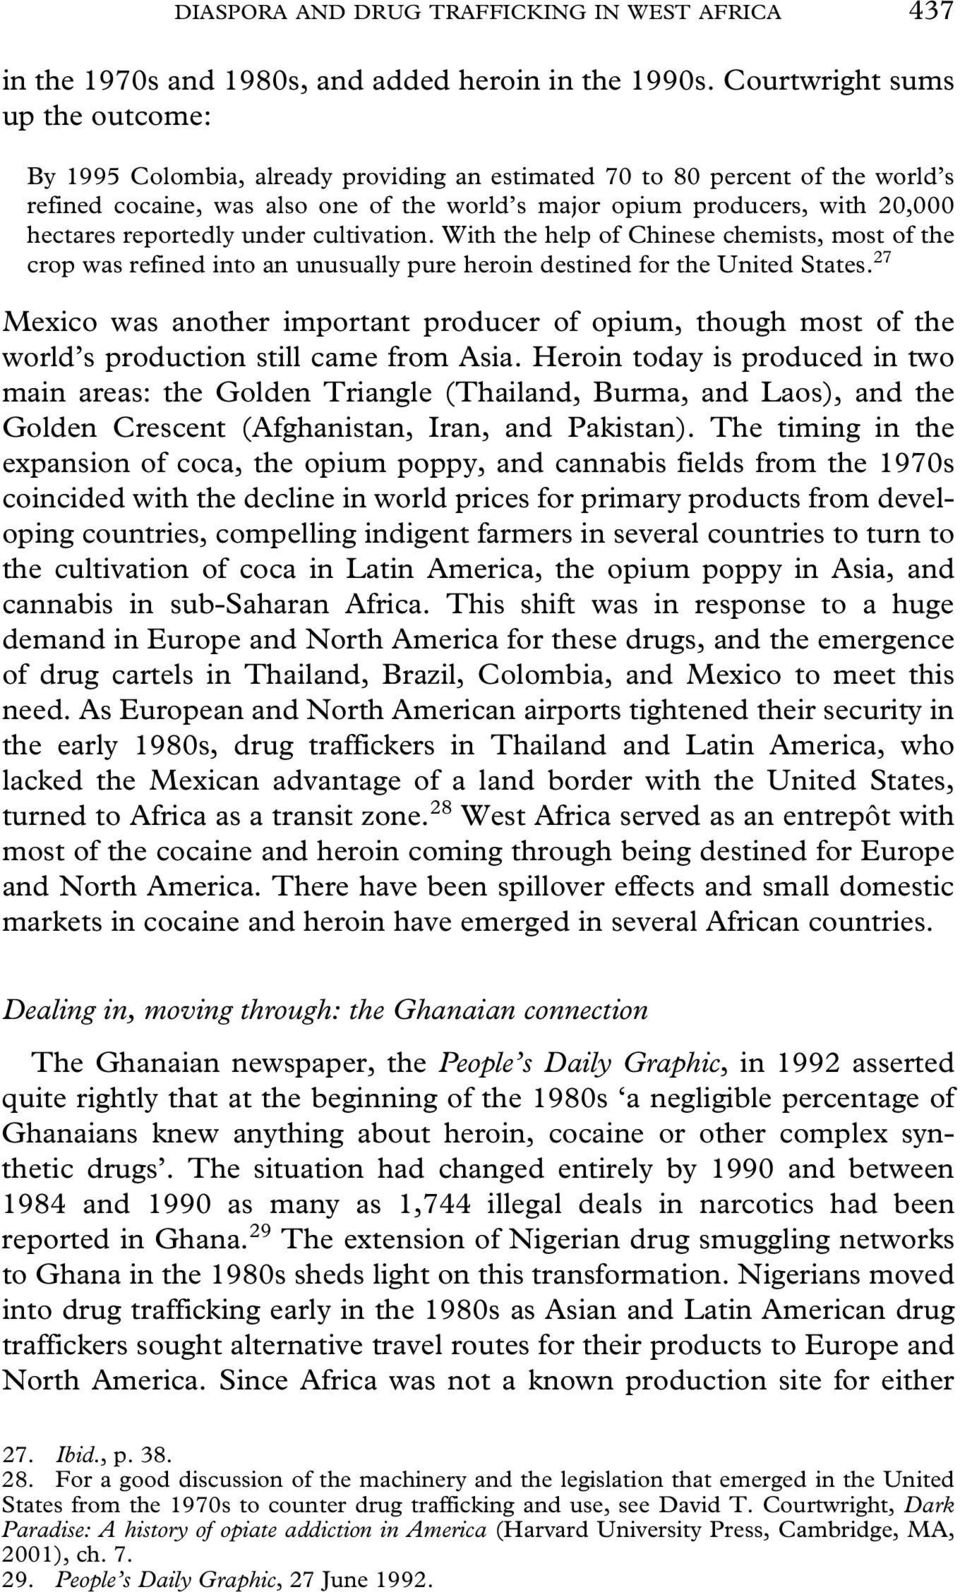 hectares reportedly under cultivation. With the help of Chinese chemists, most of the crop was refined into an unusually pure heroin destined for the United States.